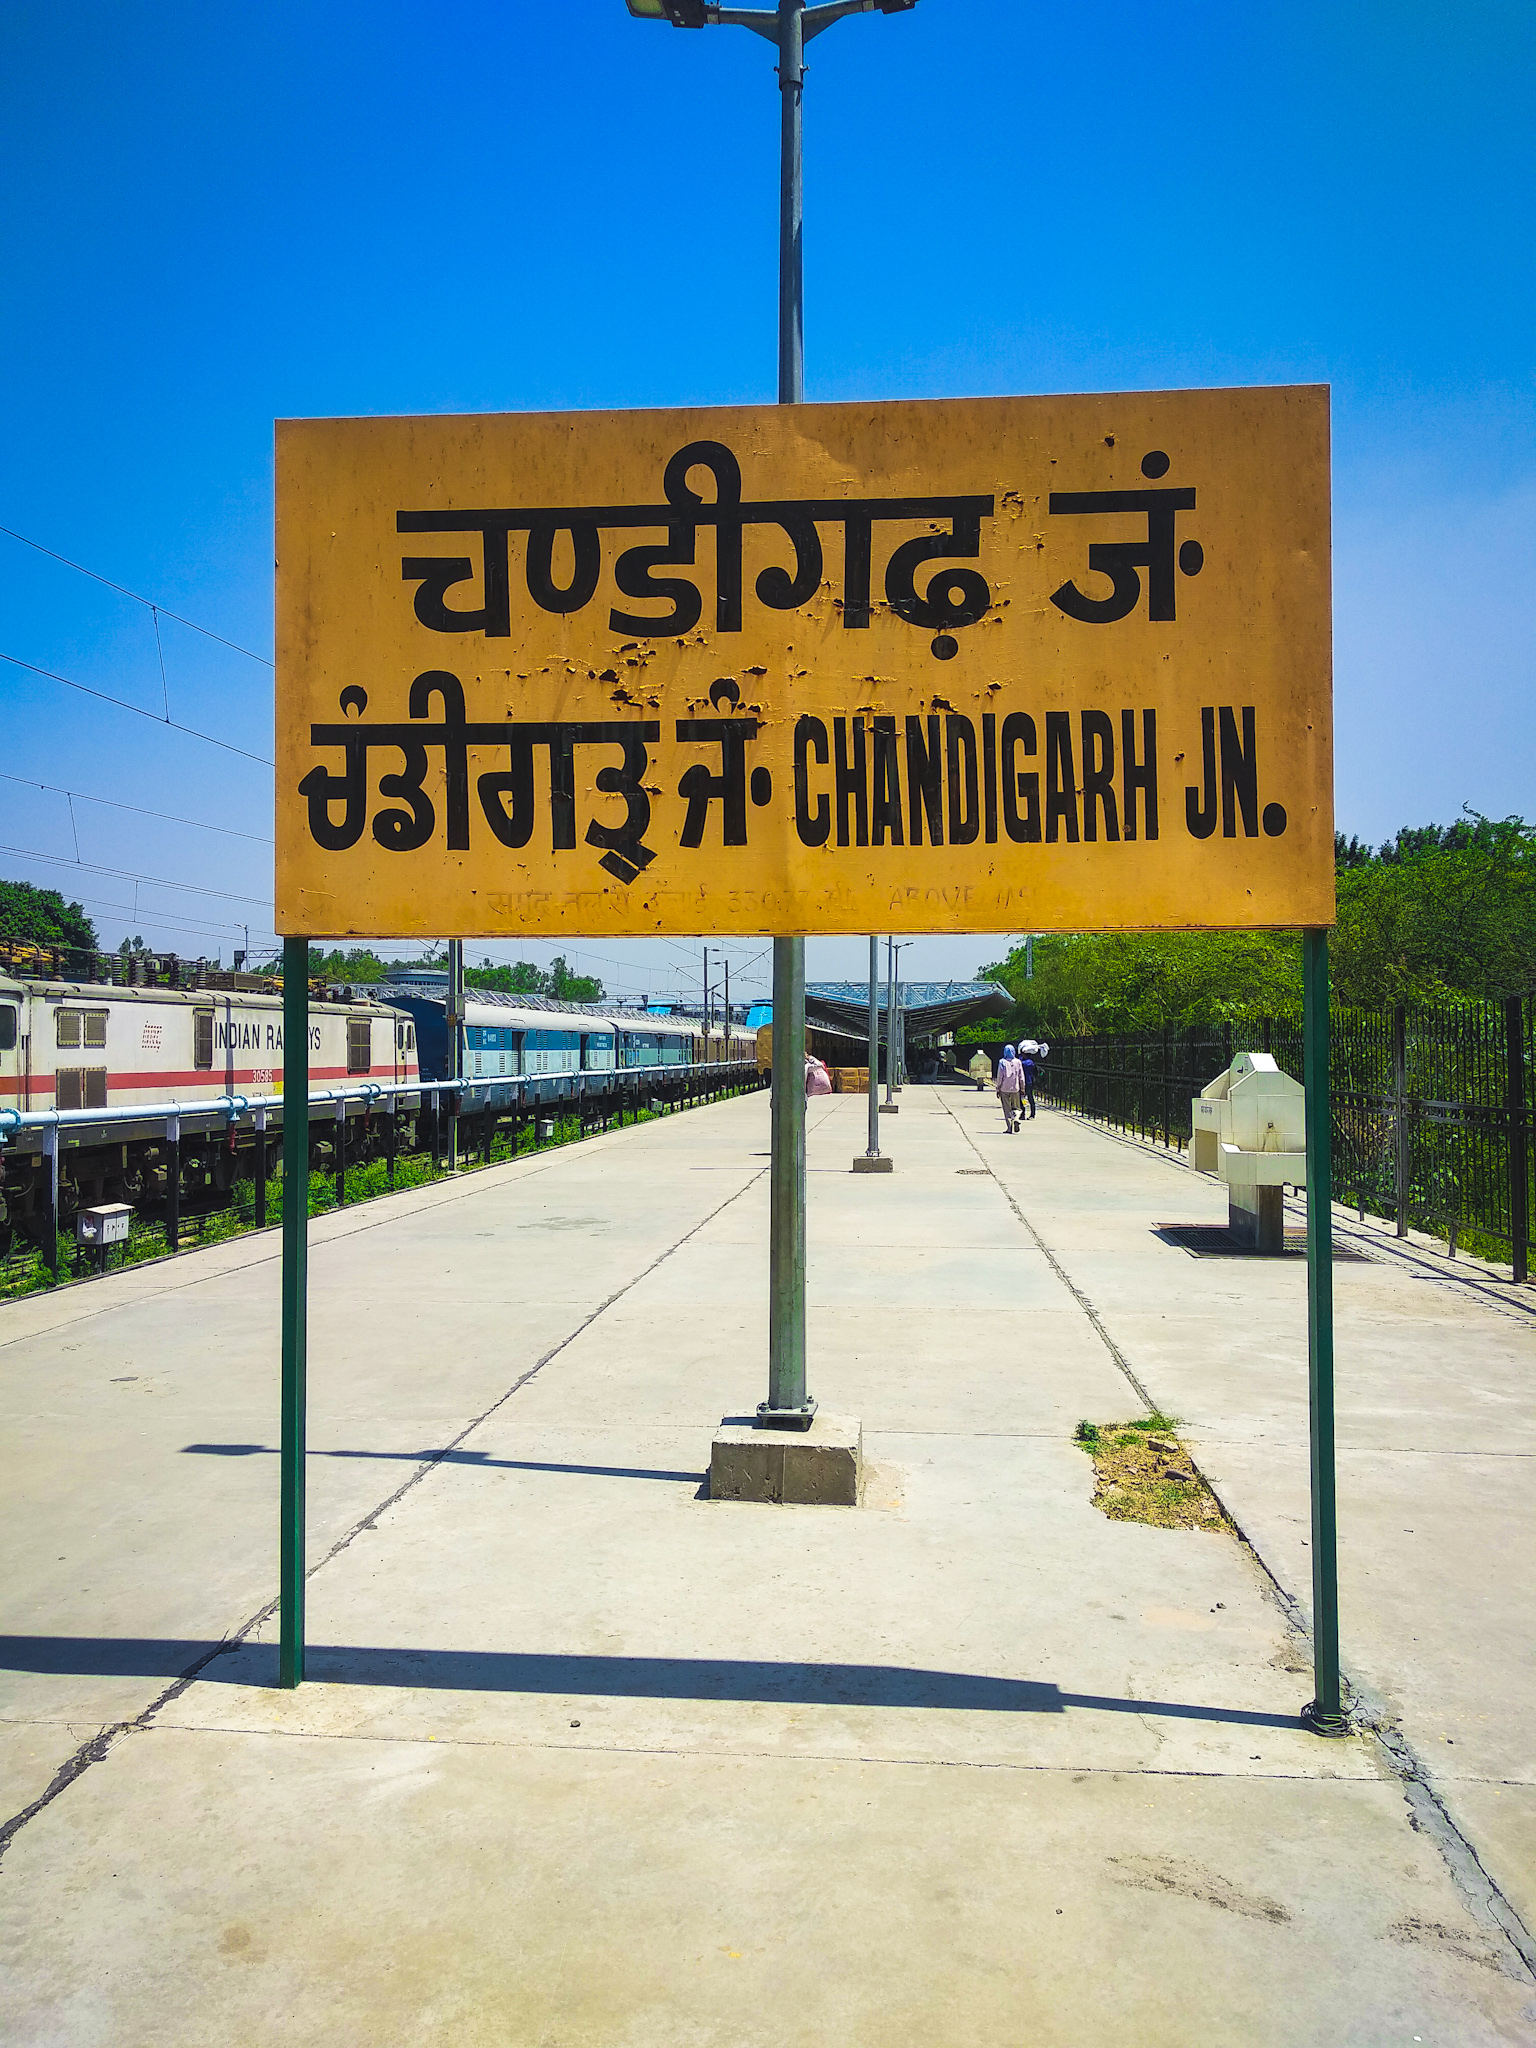 Garden City Chandigarh: 15 Best Places To Explore, Things To Do, Night Life... 2